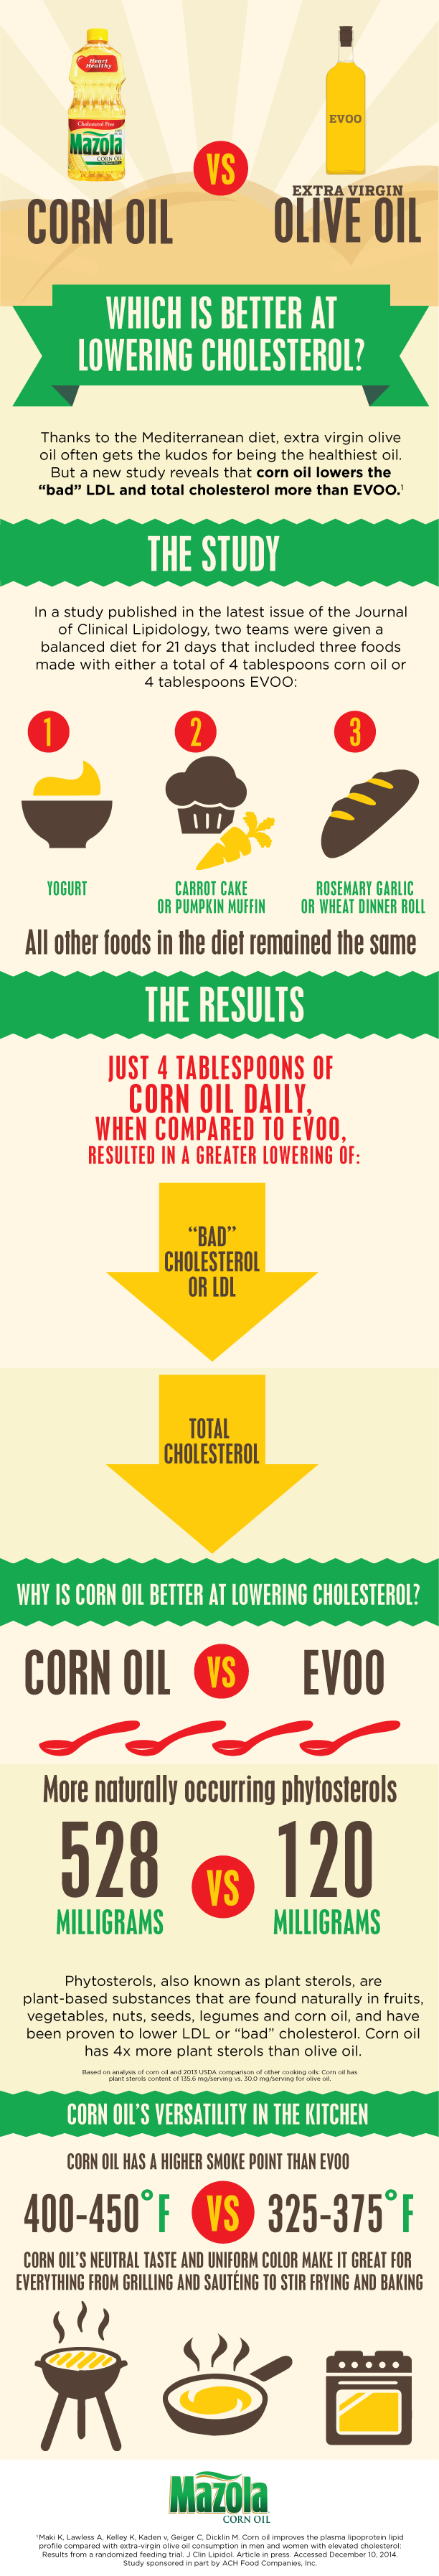 Corn Oil vs Olive Oil Infographic